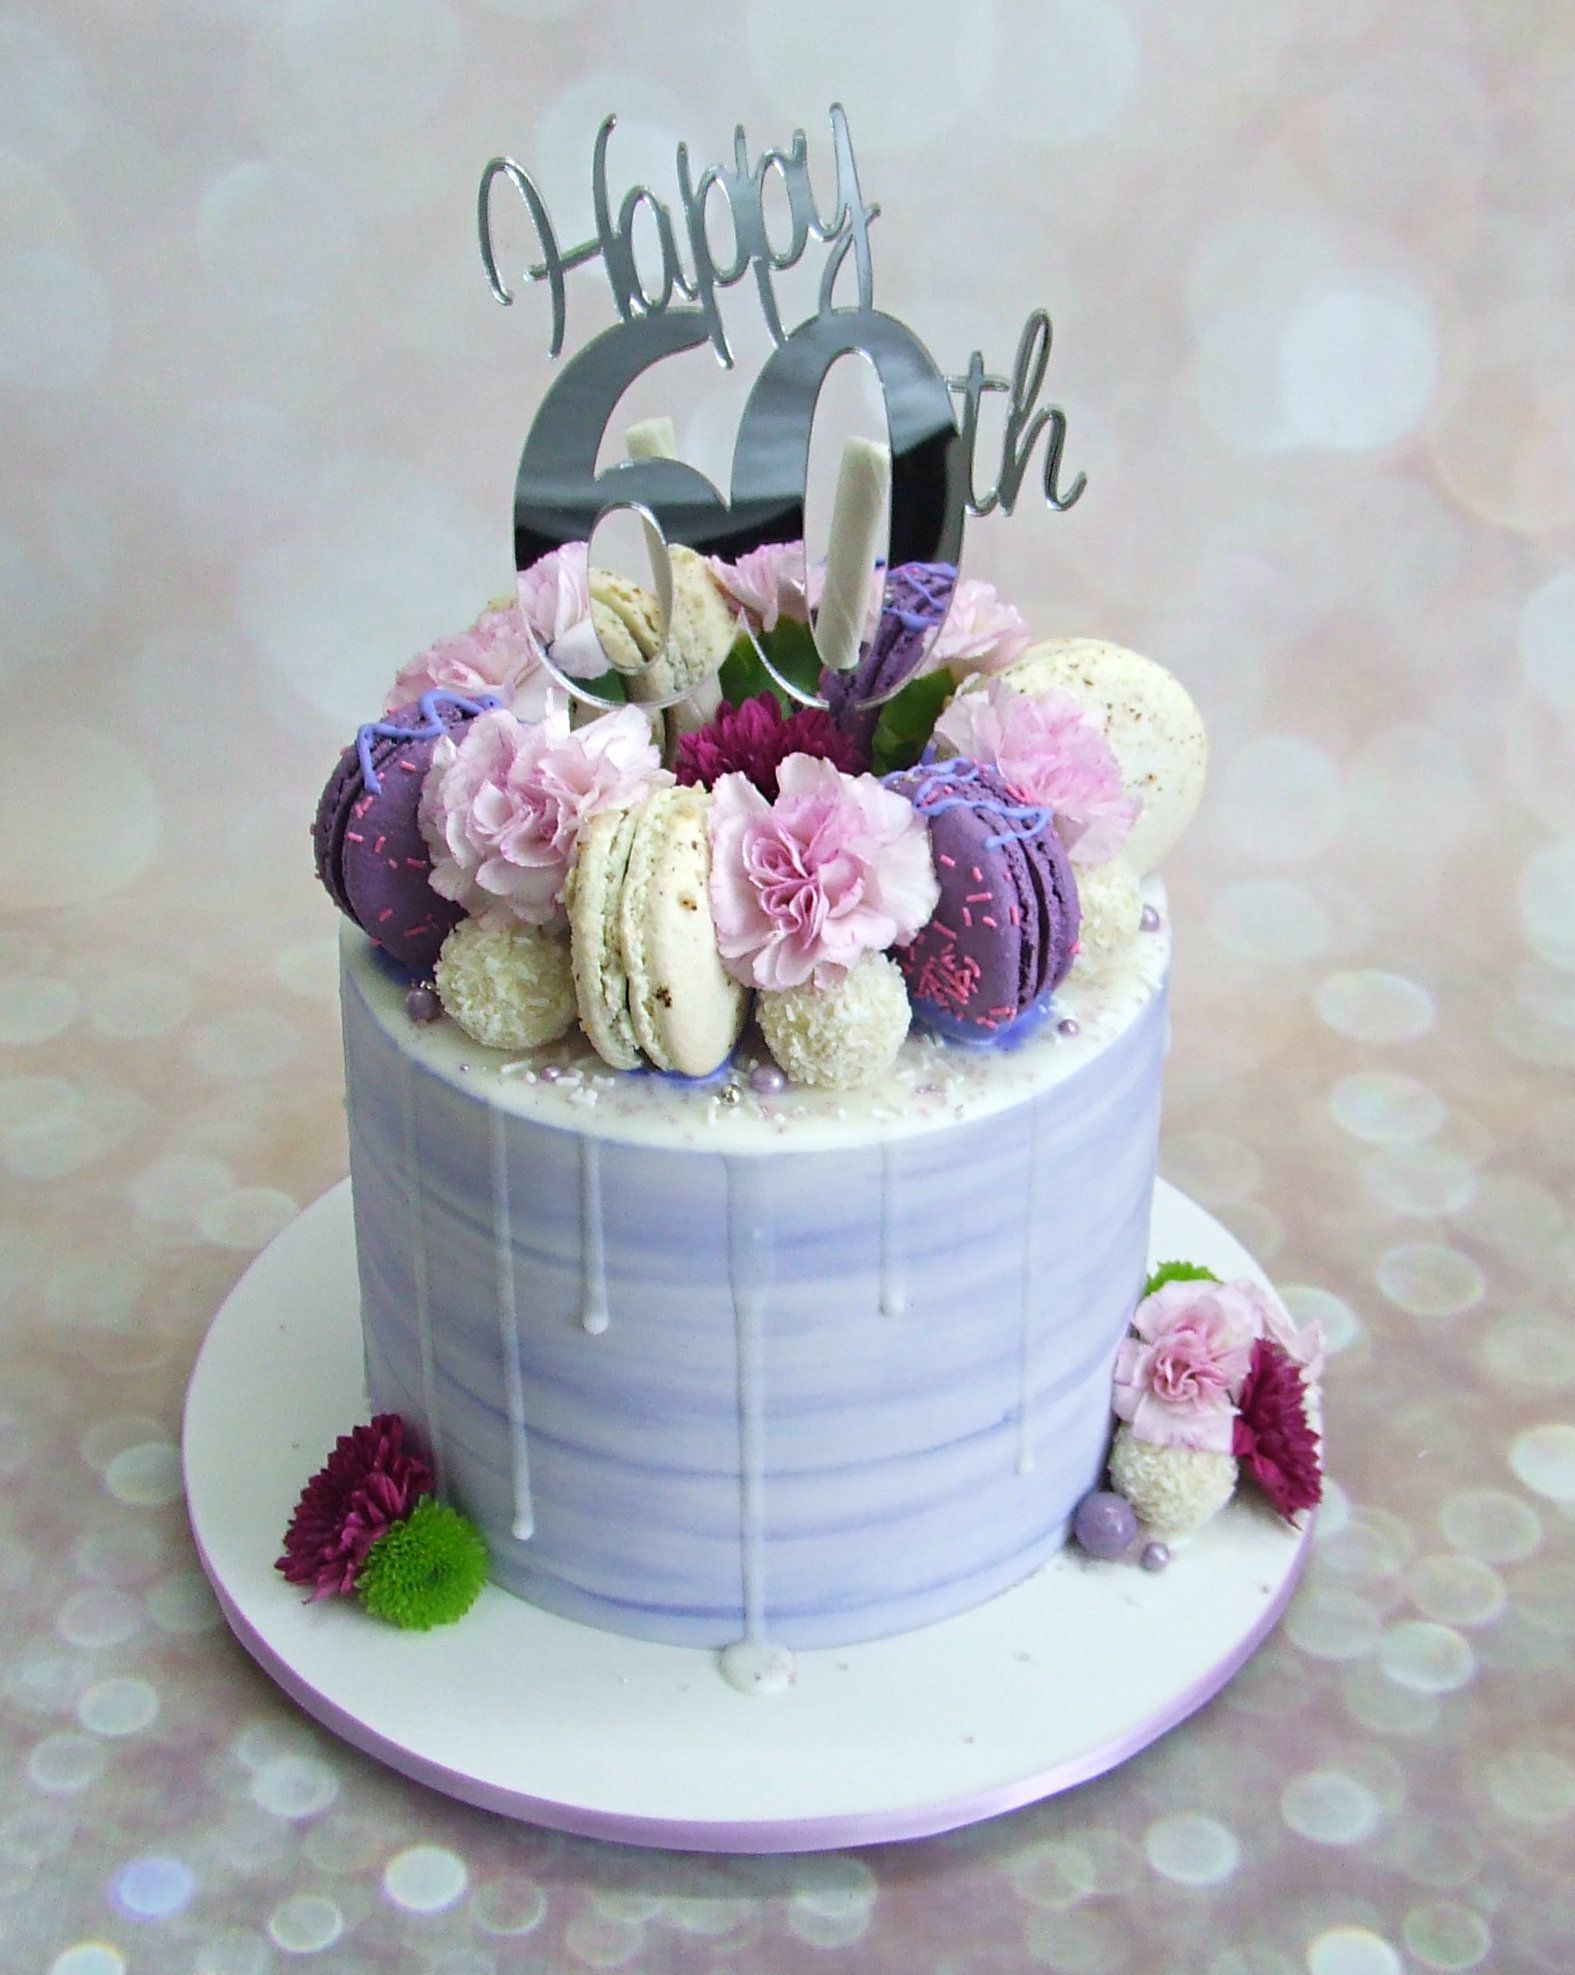 How To Make A Drip Cake To Wow The Party Drip Cakes 60th